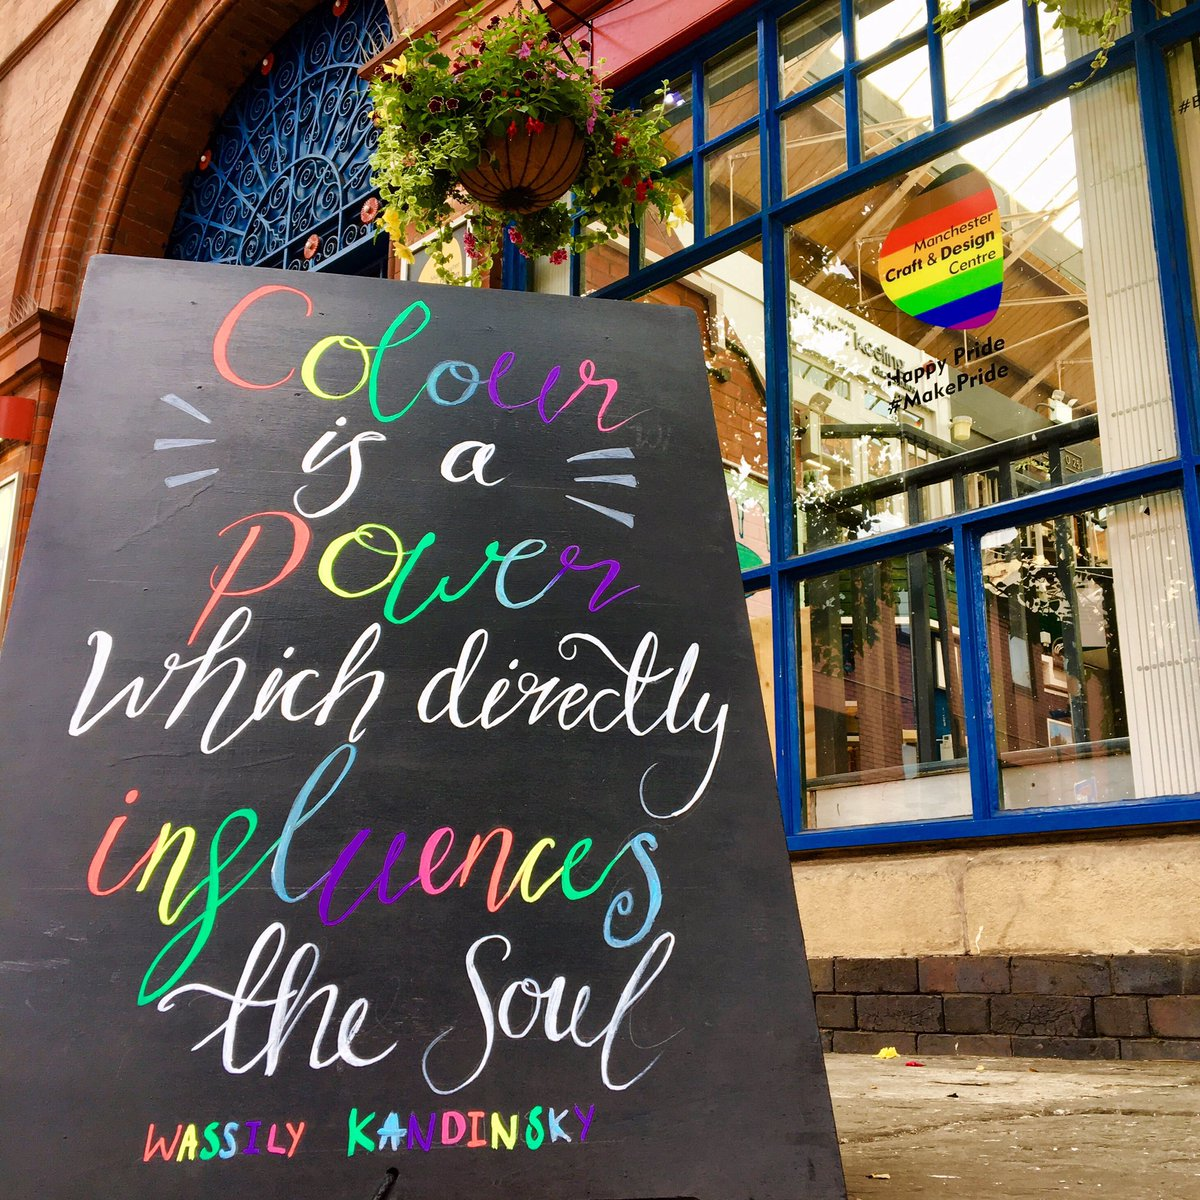 Creative and inspiring #pride vibes ahead of #mcrpride weekend with this inspiring #kandinsky #quote to #makepride #manchesterpride2019 #manchesterpride #inspiringquotes #wassilykandinsky #colour #creativity<br>http://pic.twitter.com/L5PZr71XmX